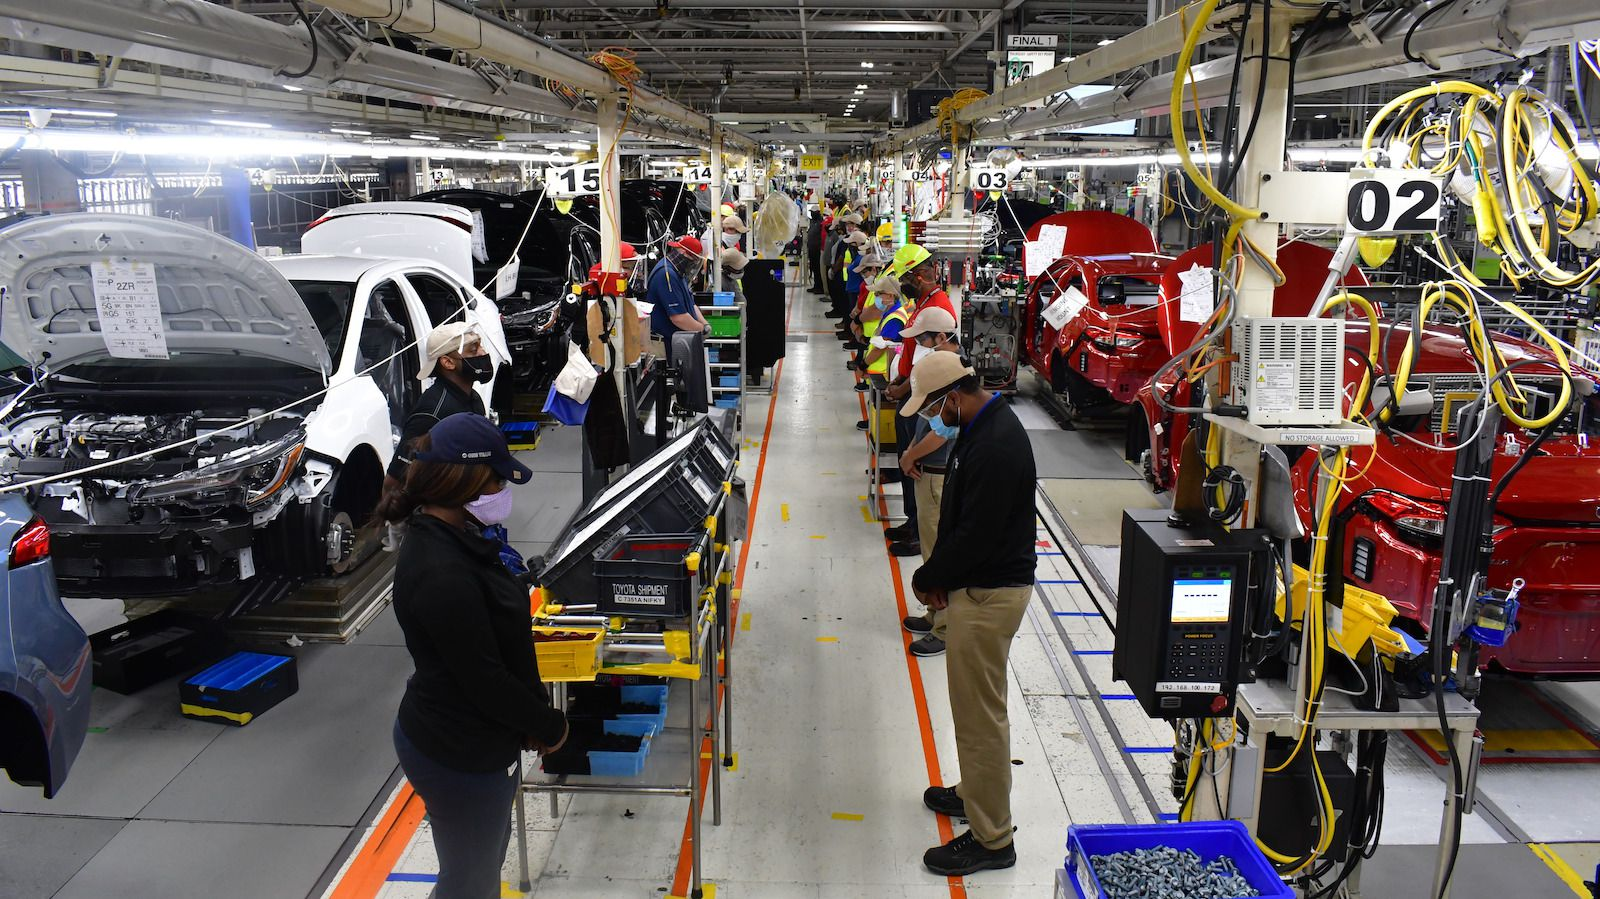 In Toyota factories around North America, production line workers paused for 8 minutes and 46 seconds in silence in honor of the memory of George Floyd, who was killed by a police officer in Minneapolis.